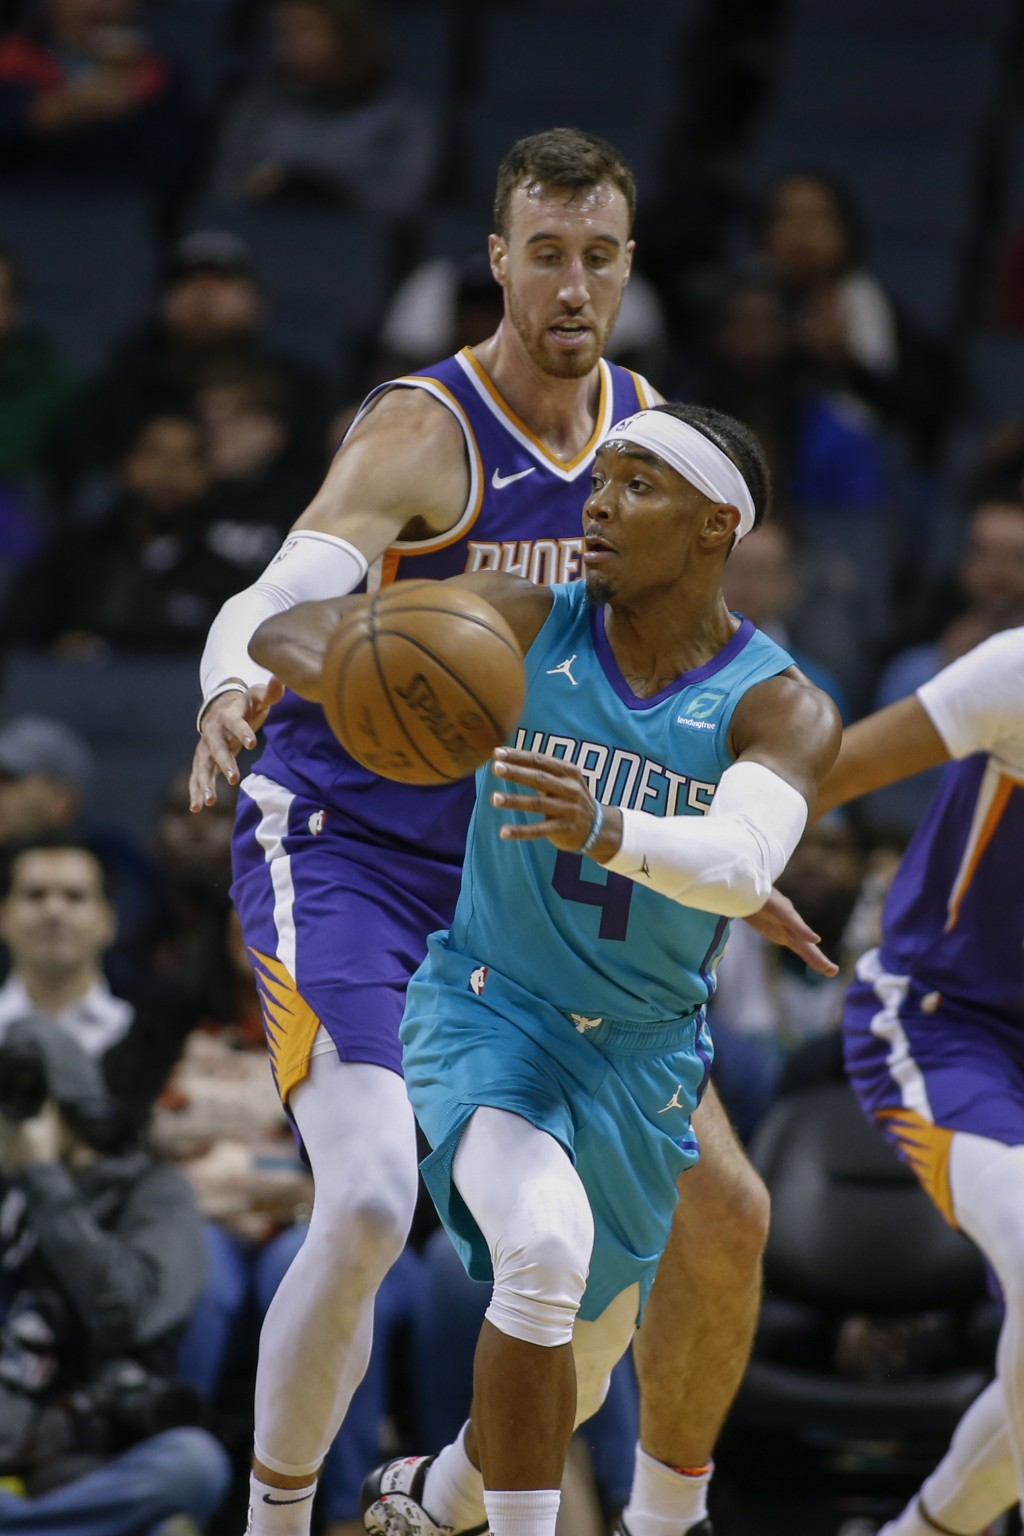 Charlotte Hornets guard Devonte' Graham (4) passes as Phoenix Suns forward Frank Kaminsky, rear, defends in the first half of an NBA basketball game i...